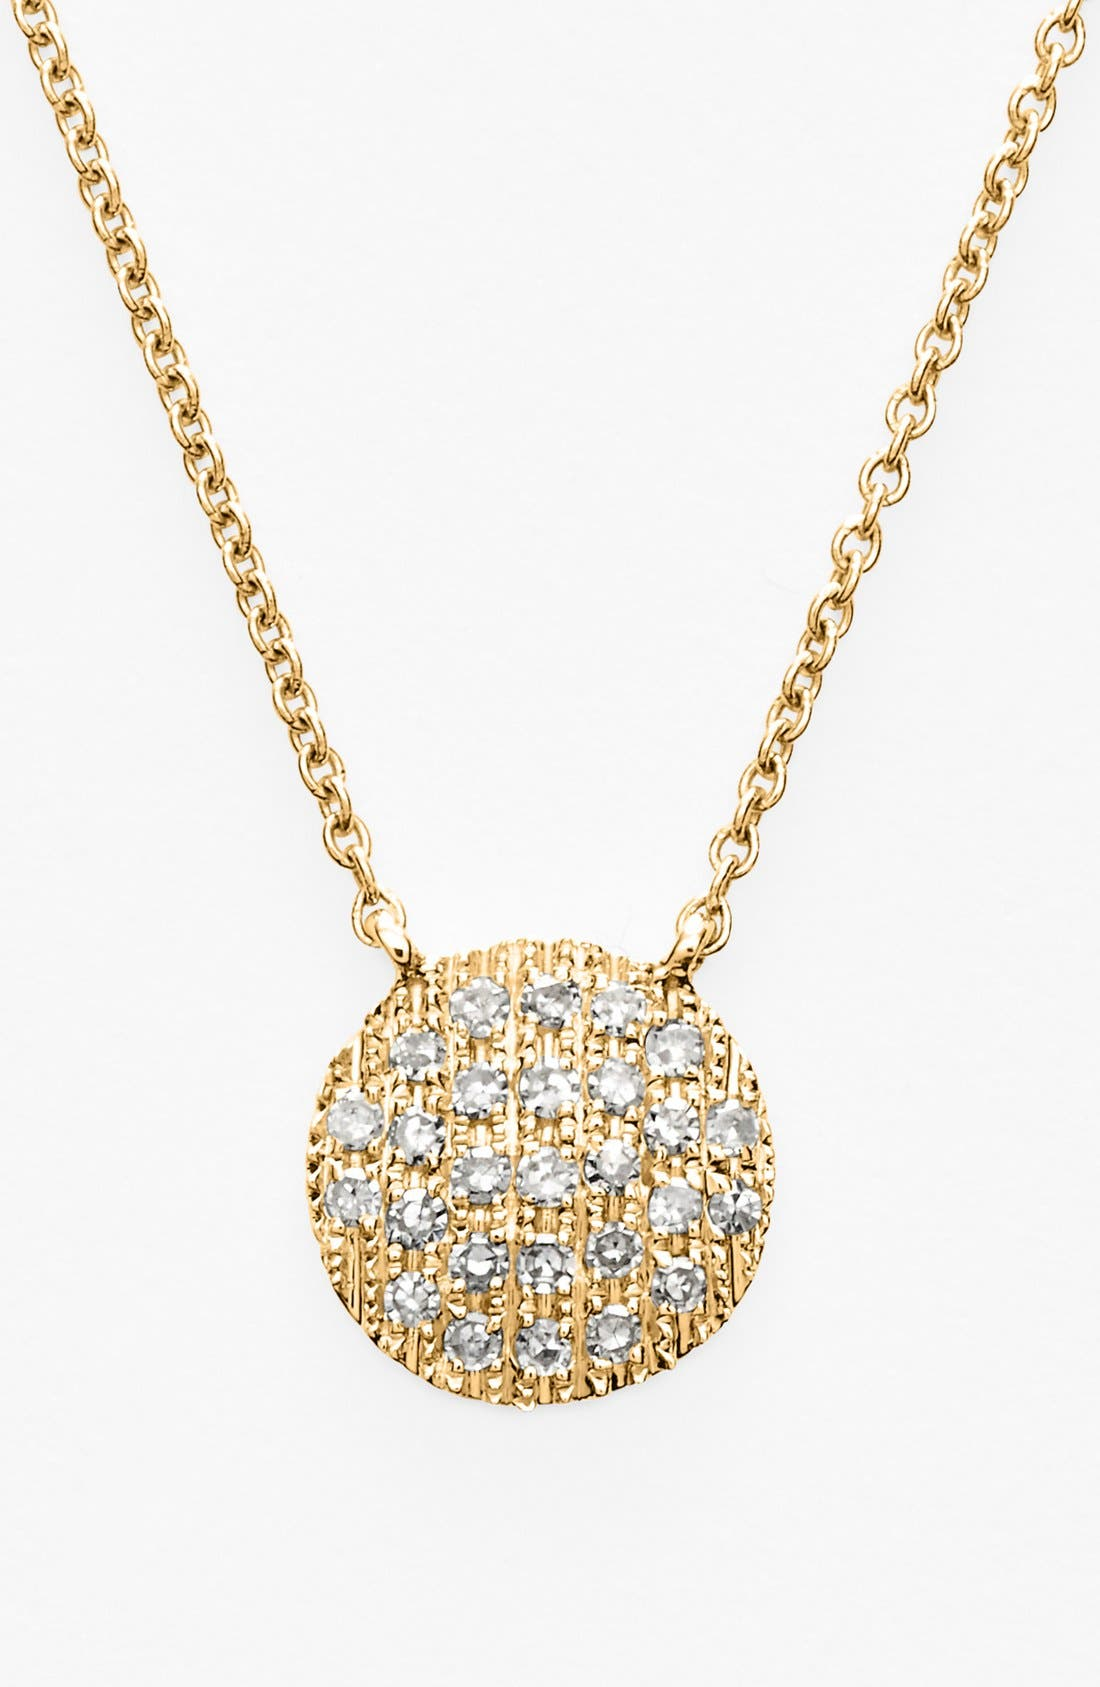 Main Image - Dana Rebecca Designs 'Lauren Joy' Diamond Disc Pendant Necklace